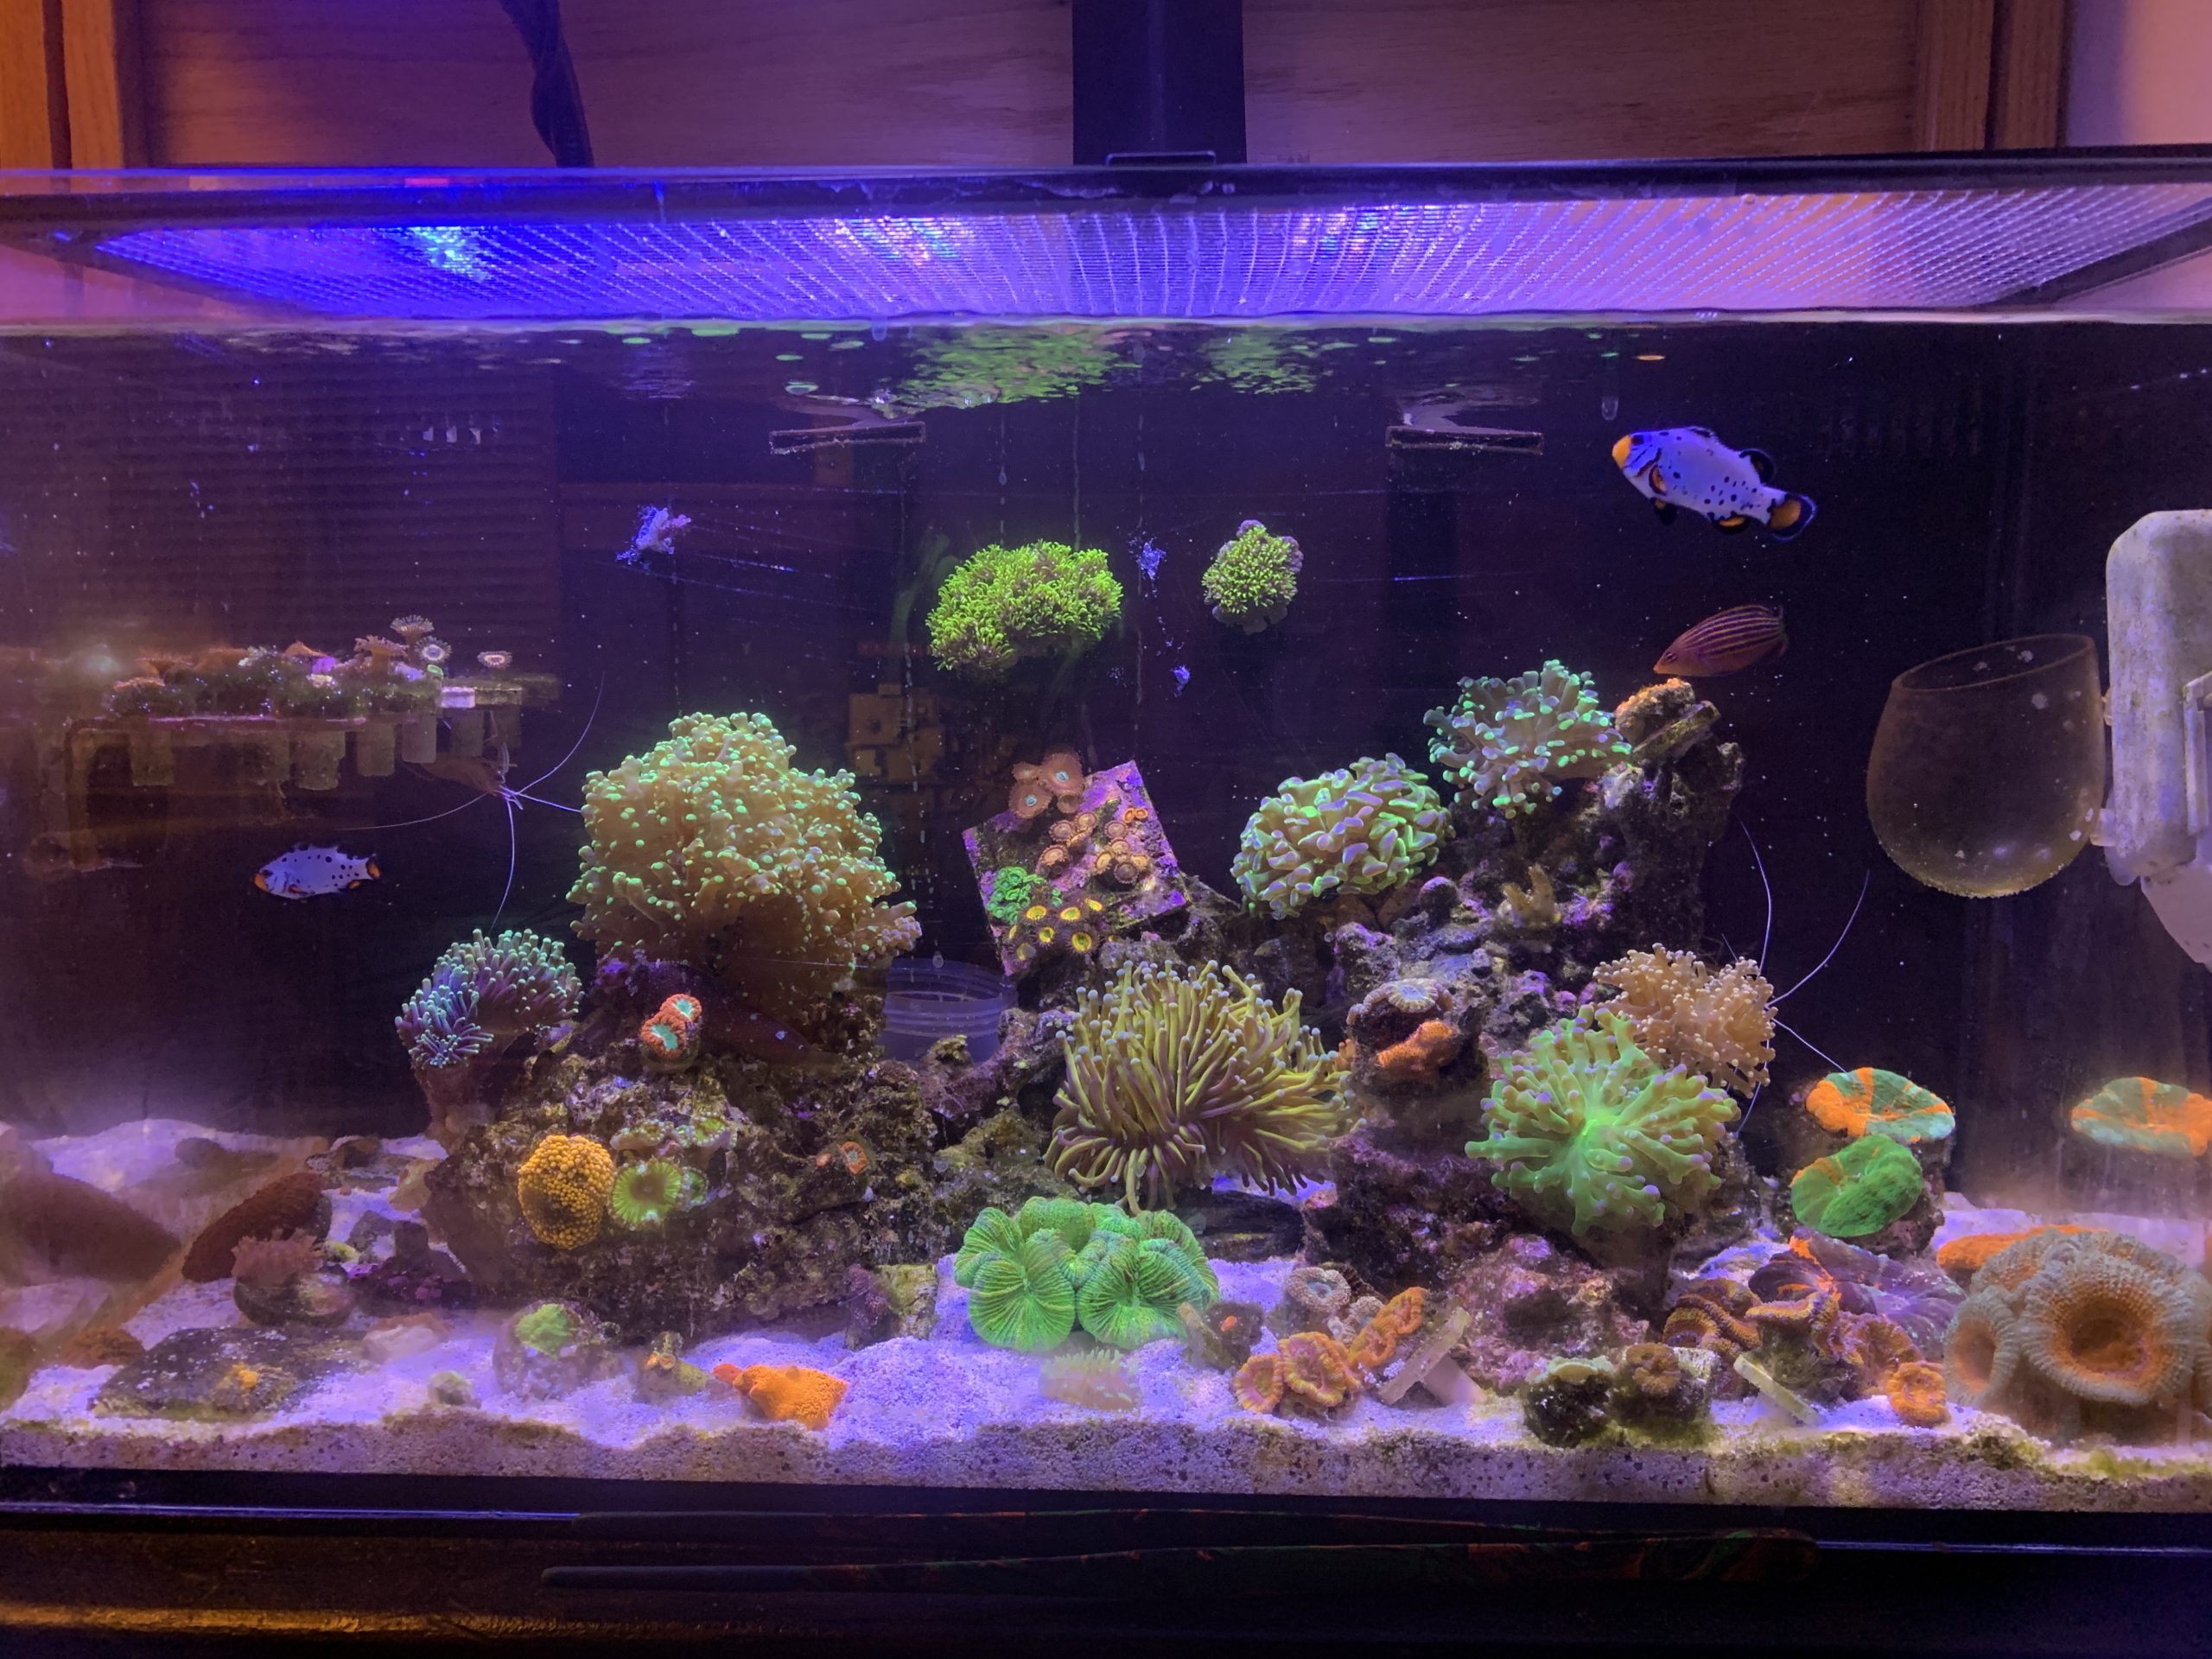 The MOST Important Aspect of a Reef Tank